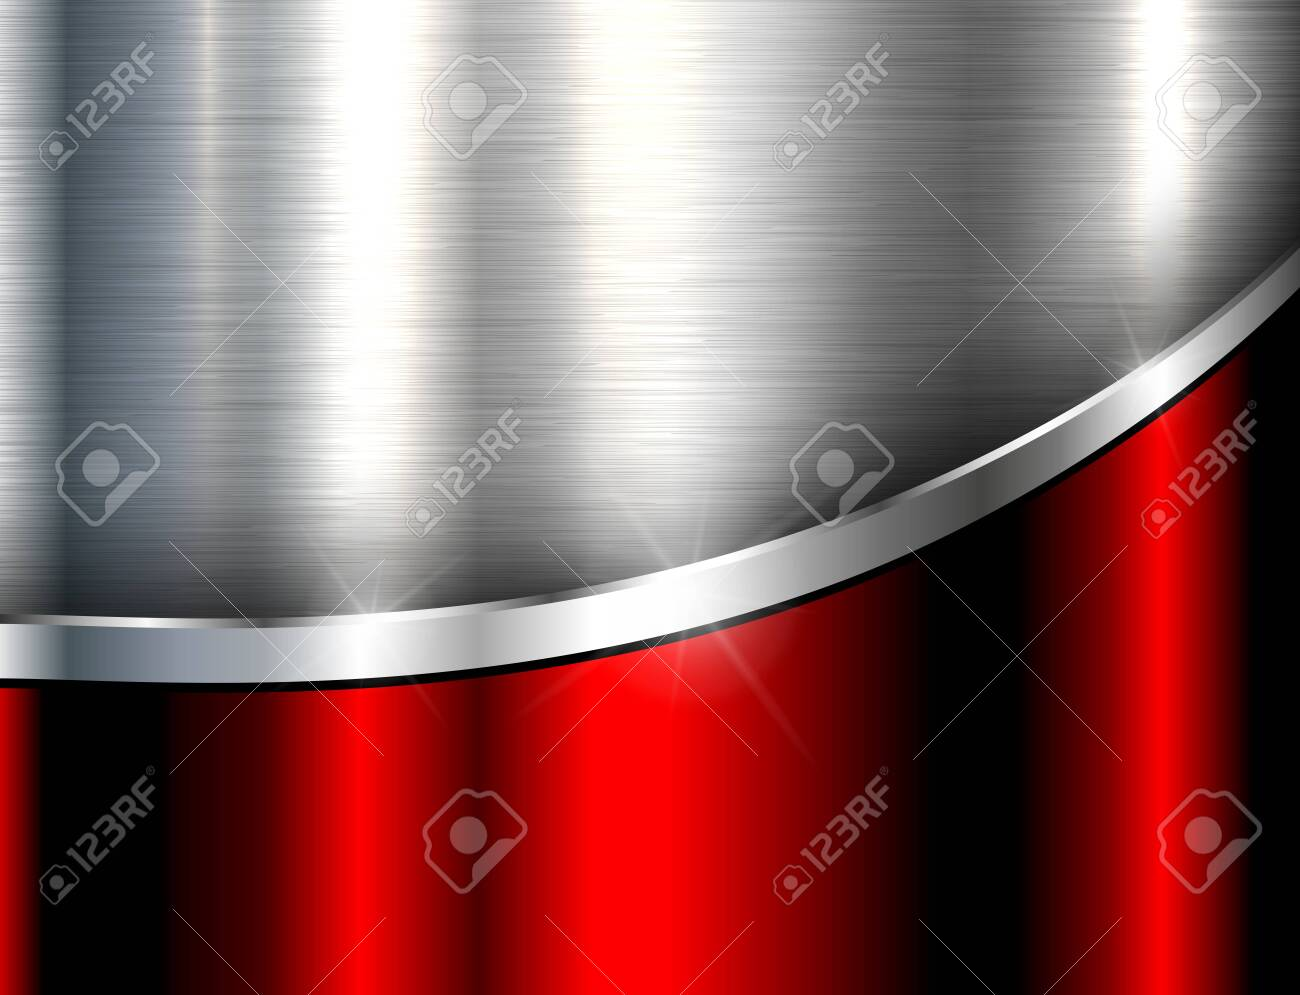 Metallic background silver red, polished steel texture, vector design. - 129905945